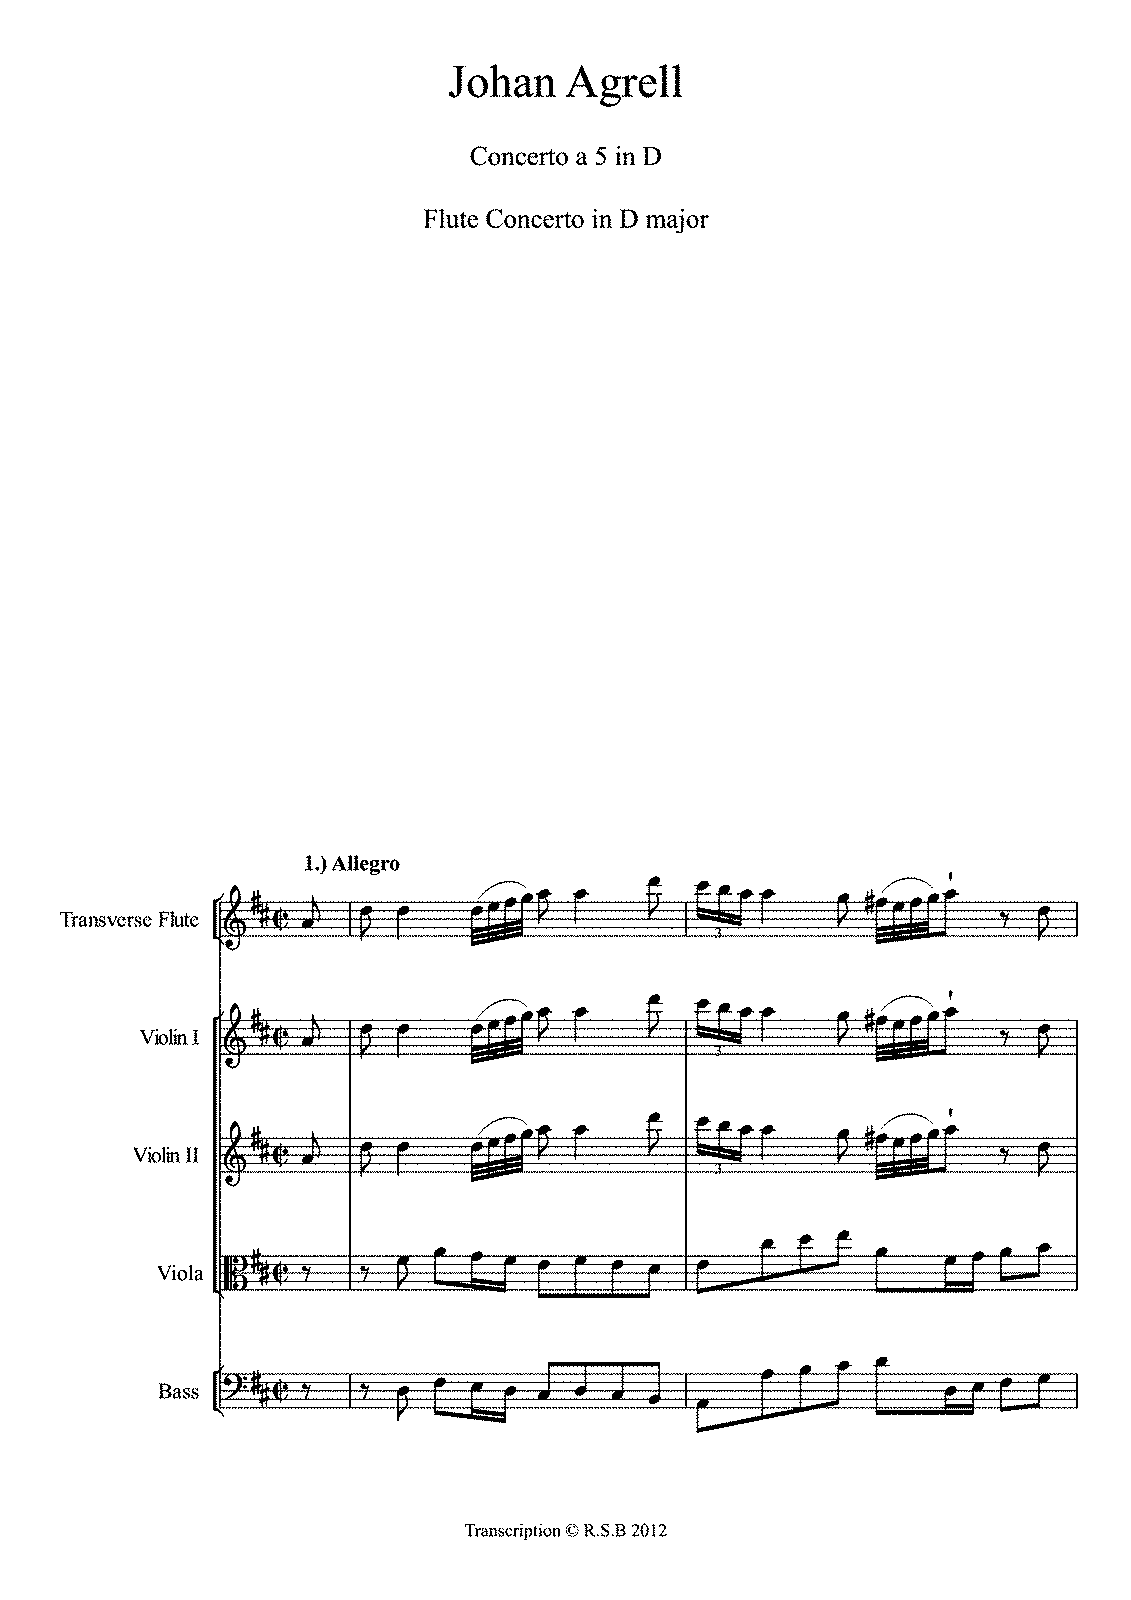 PMLP87968-Agrell Concerto a 5 in D Allegro.pdf